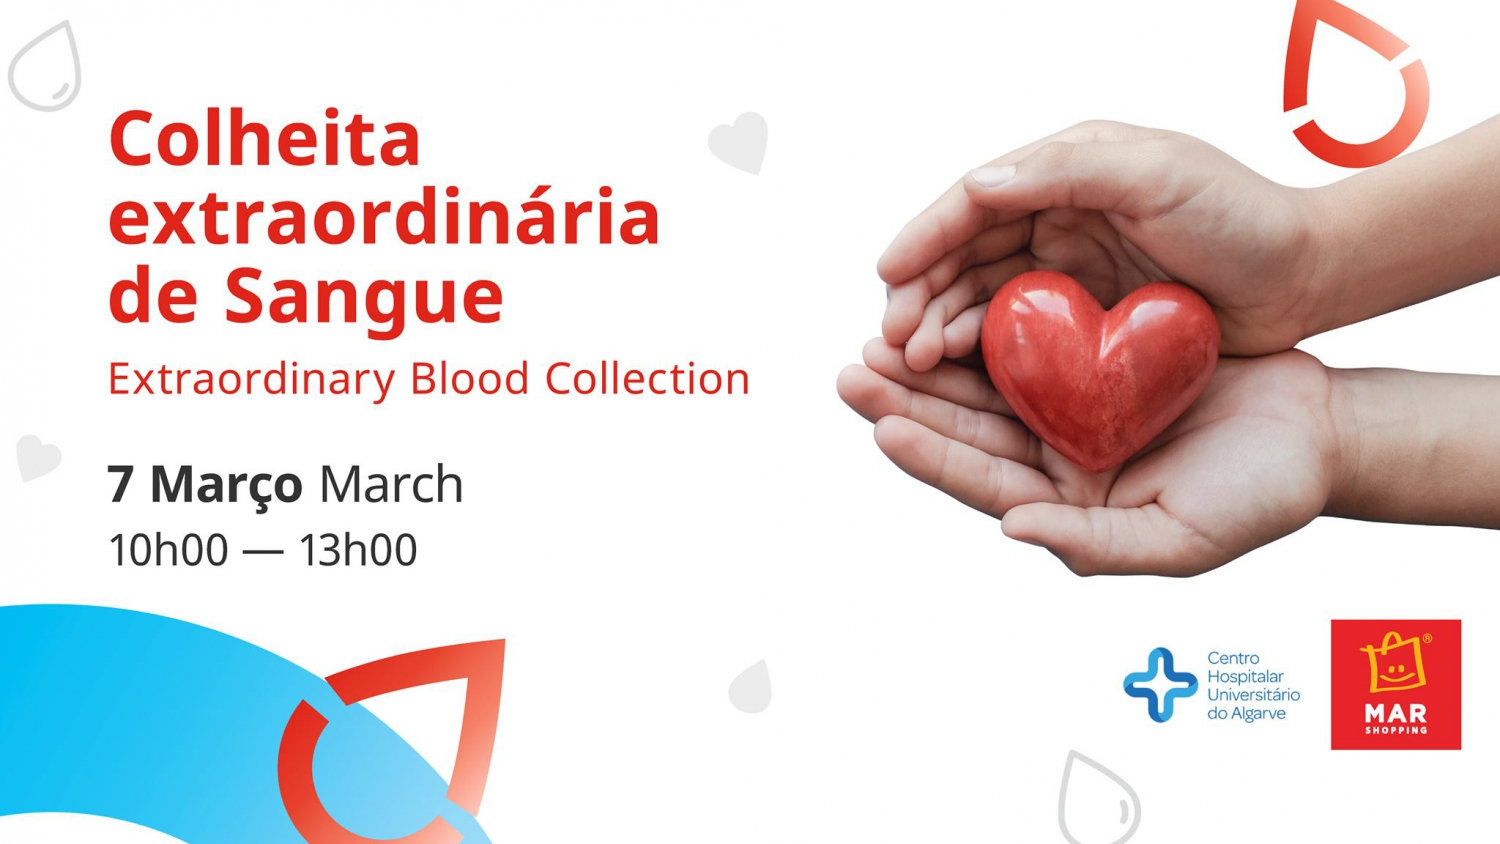 MAR Shopping promotes an Extraordinary Blood Collection